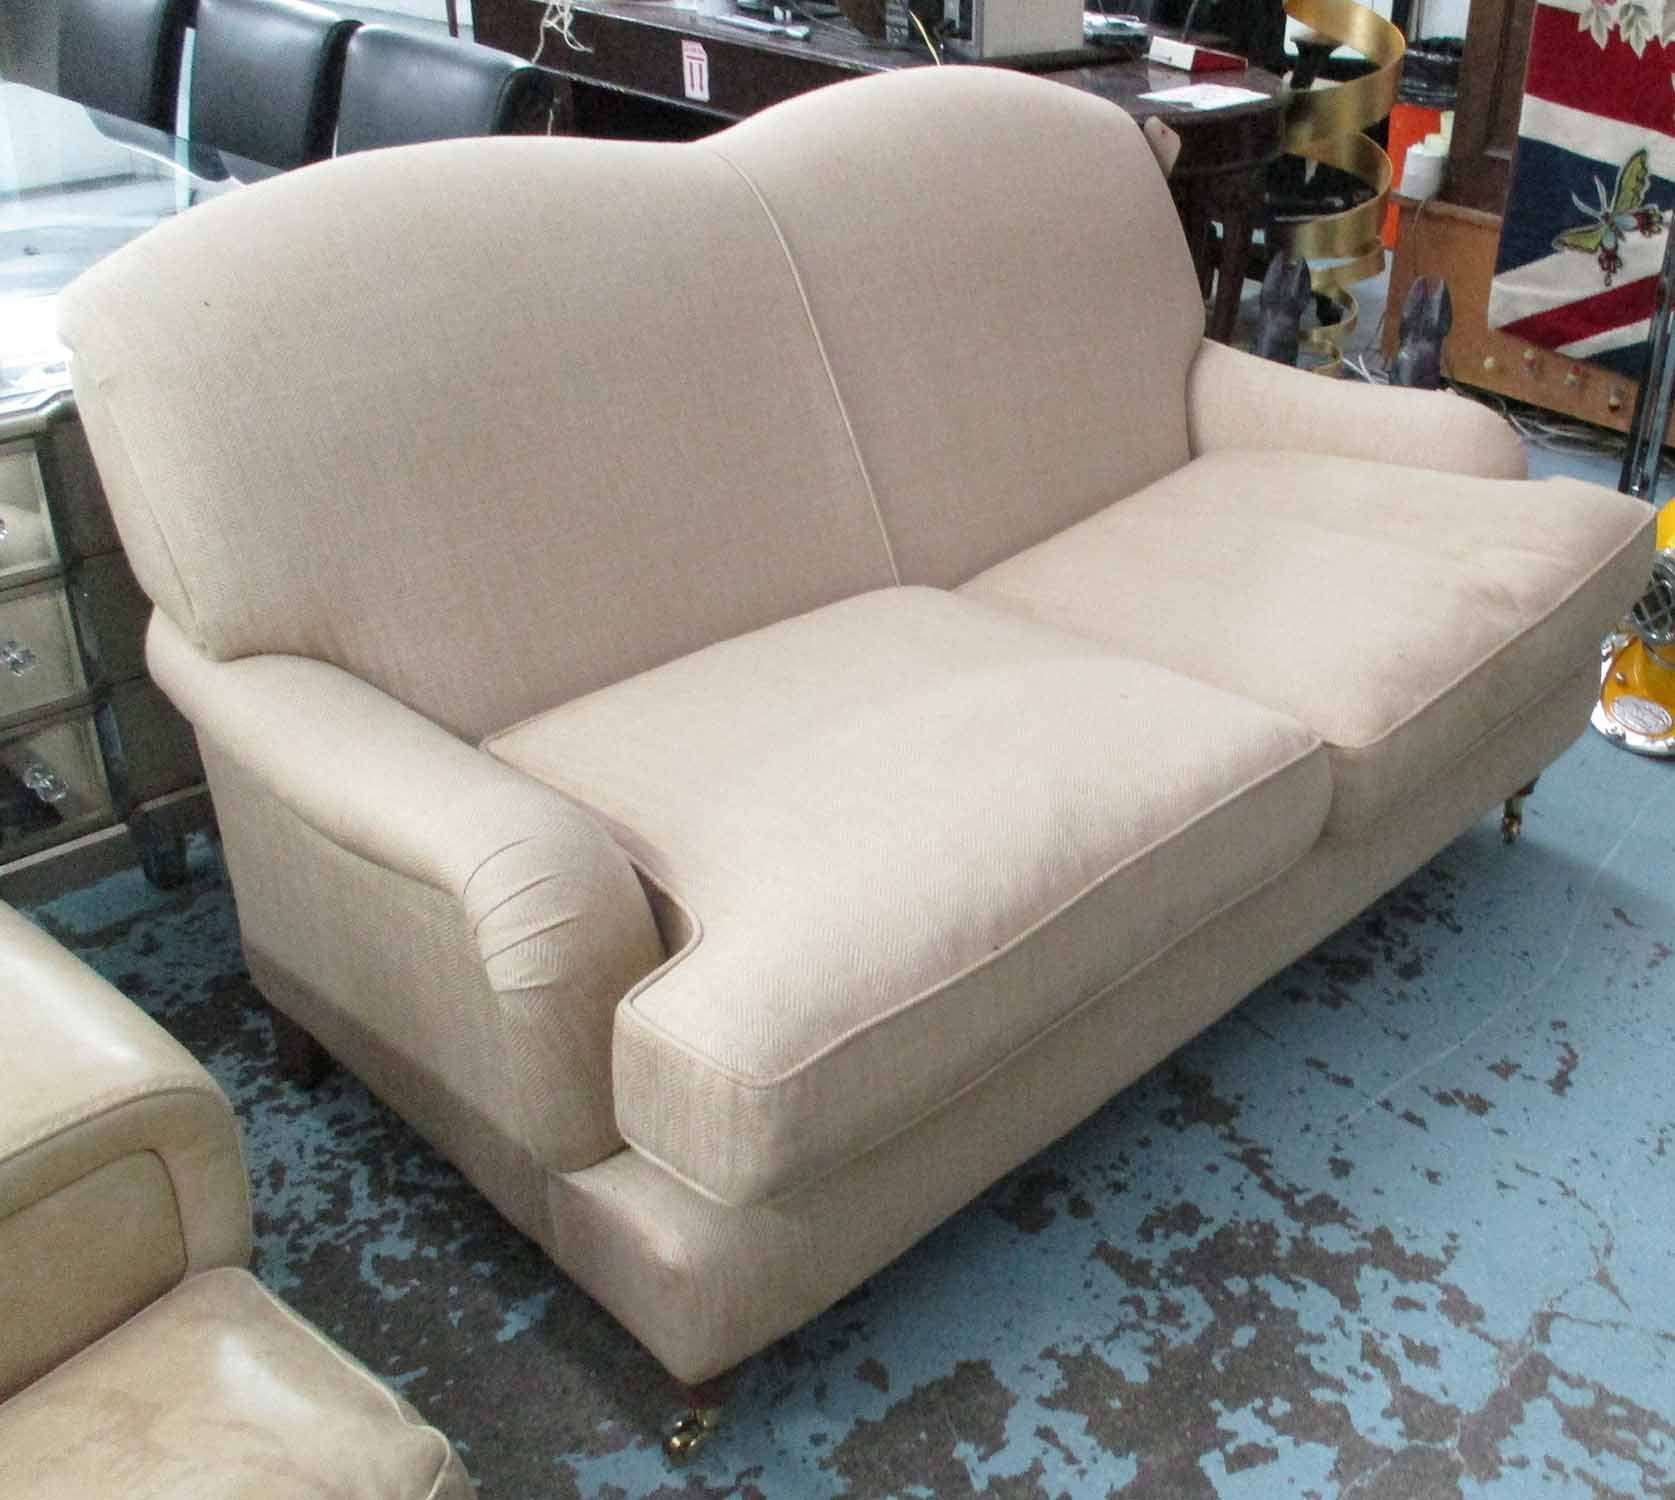 Lot 42 - LAURA ASHLEY SOFA, two seater, howard style, in brown herringbone fabric, on turned castor supports,